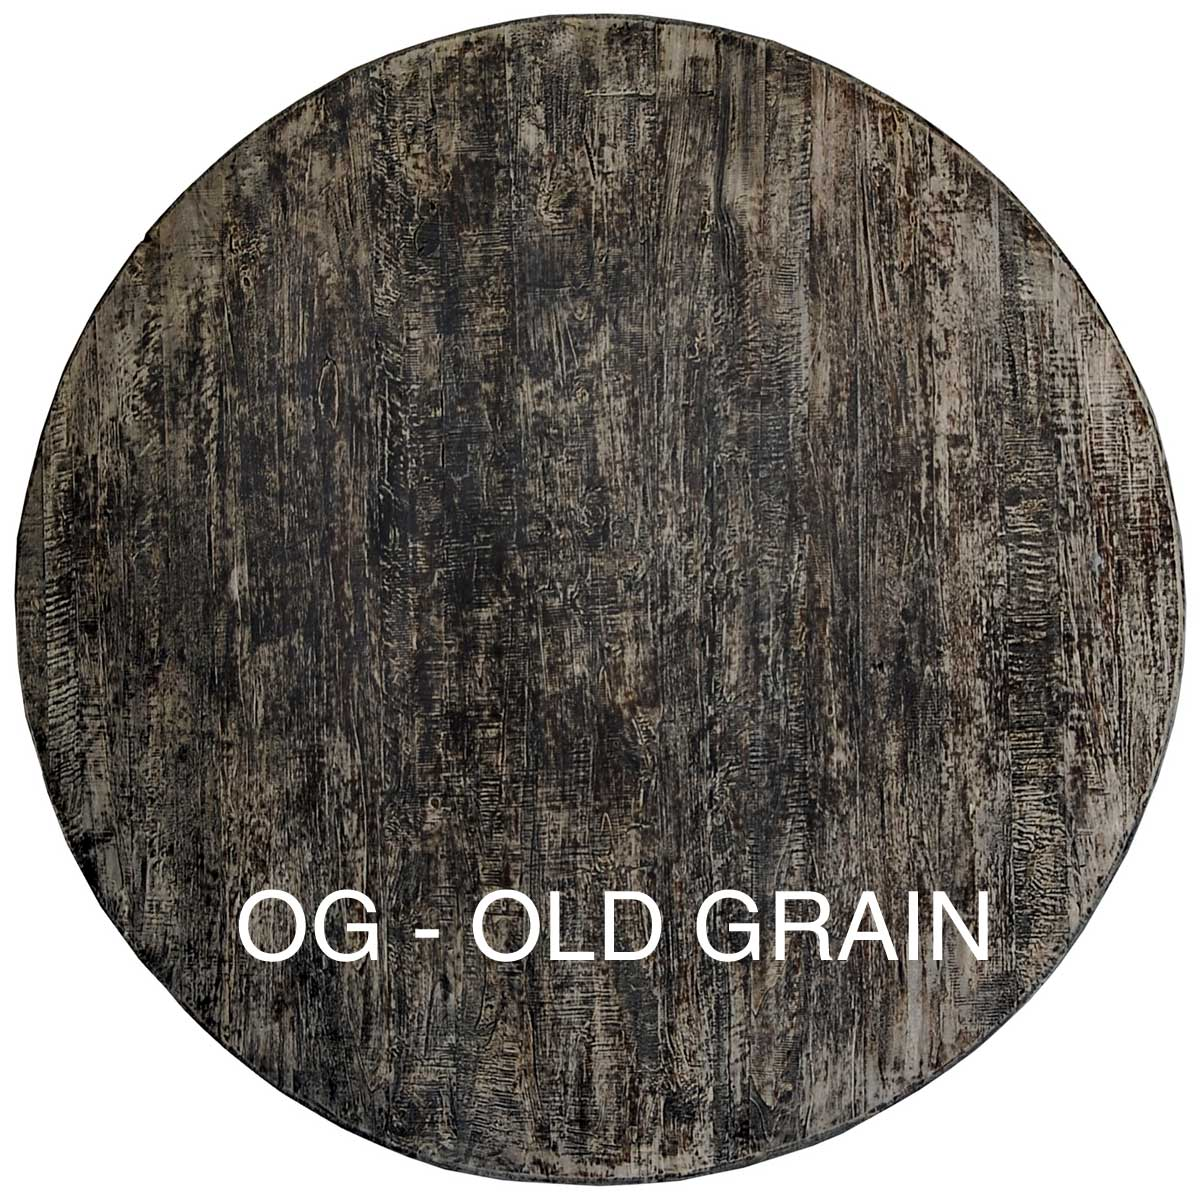 FINISH-OG-Old-Grain.jpg